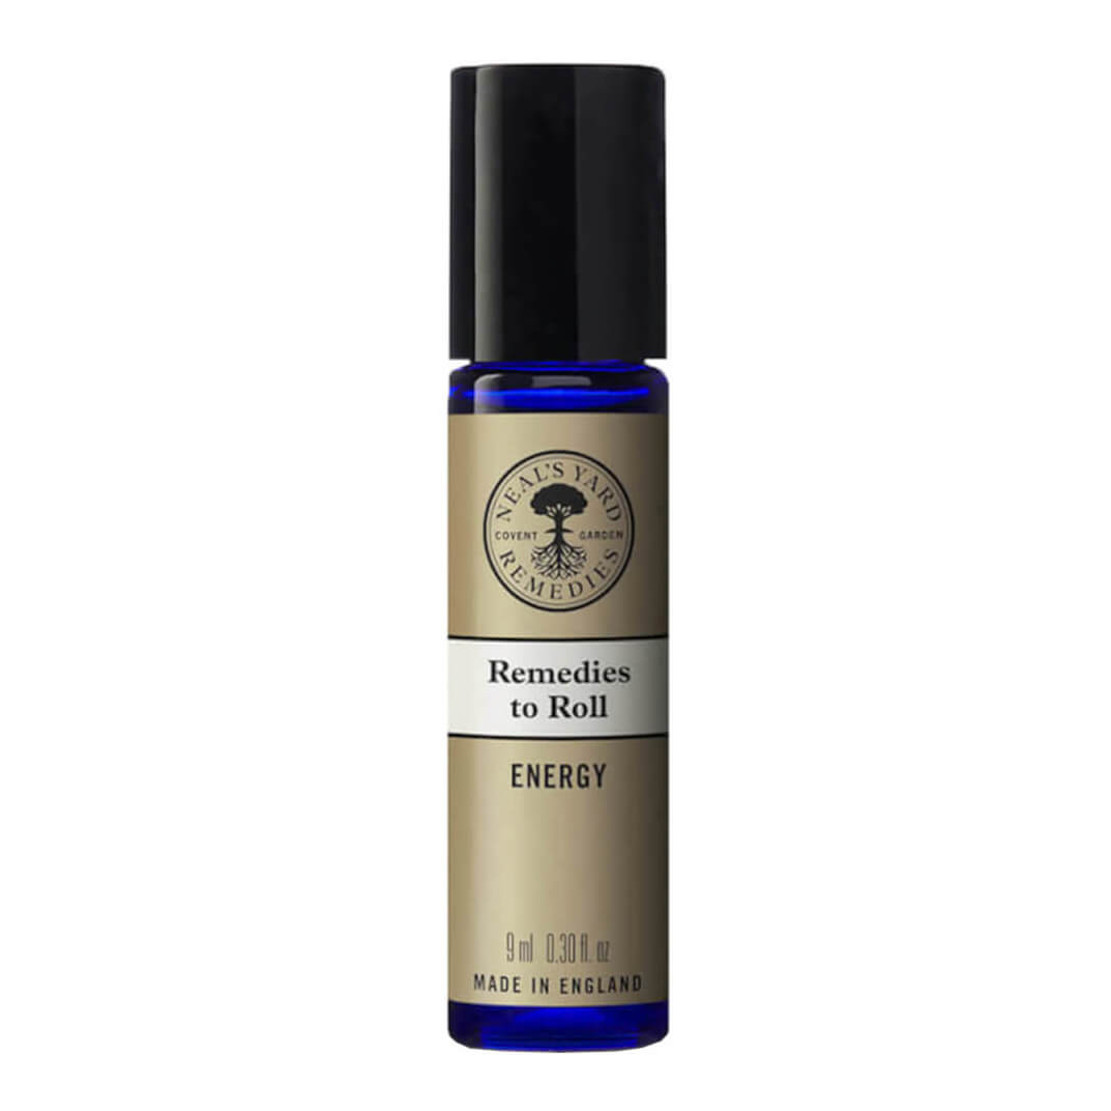 Neal's Yard Remedies Energy Remedies To Roll 9ml